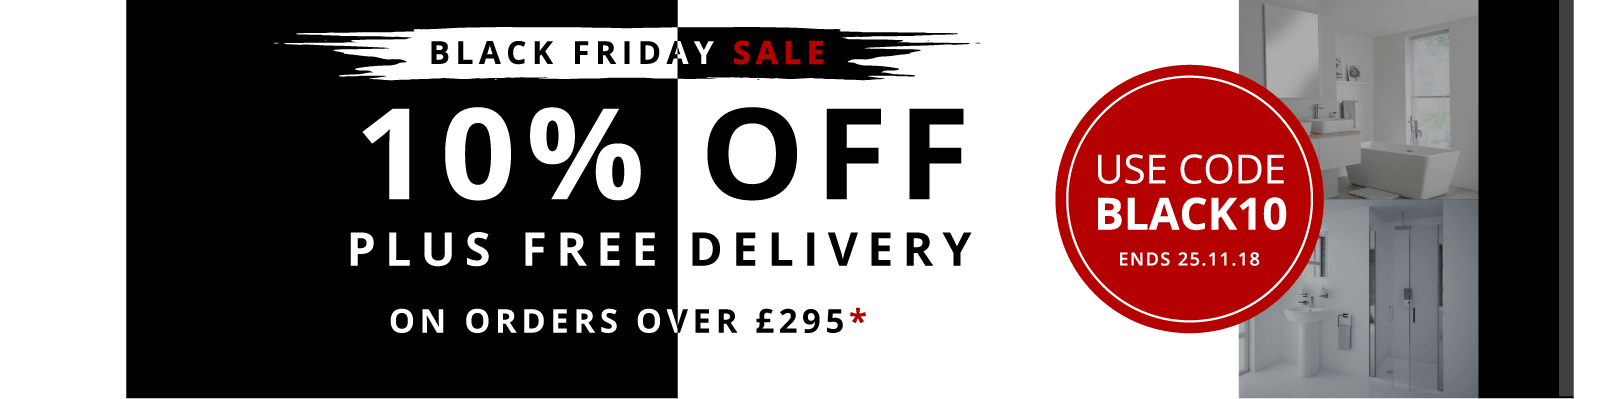 Black Friday Sale 10% Off + Free Delivery On Orders Over £295 Use Voucher Code BLACK10 Ends 25.11.18